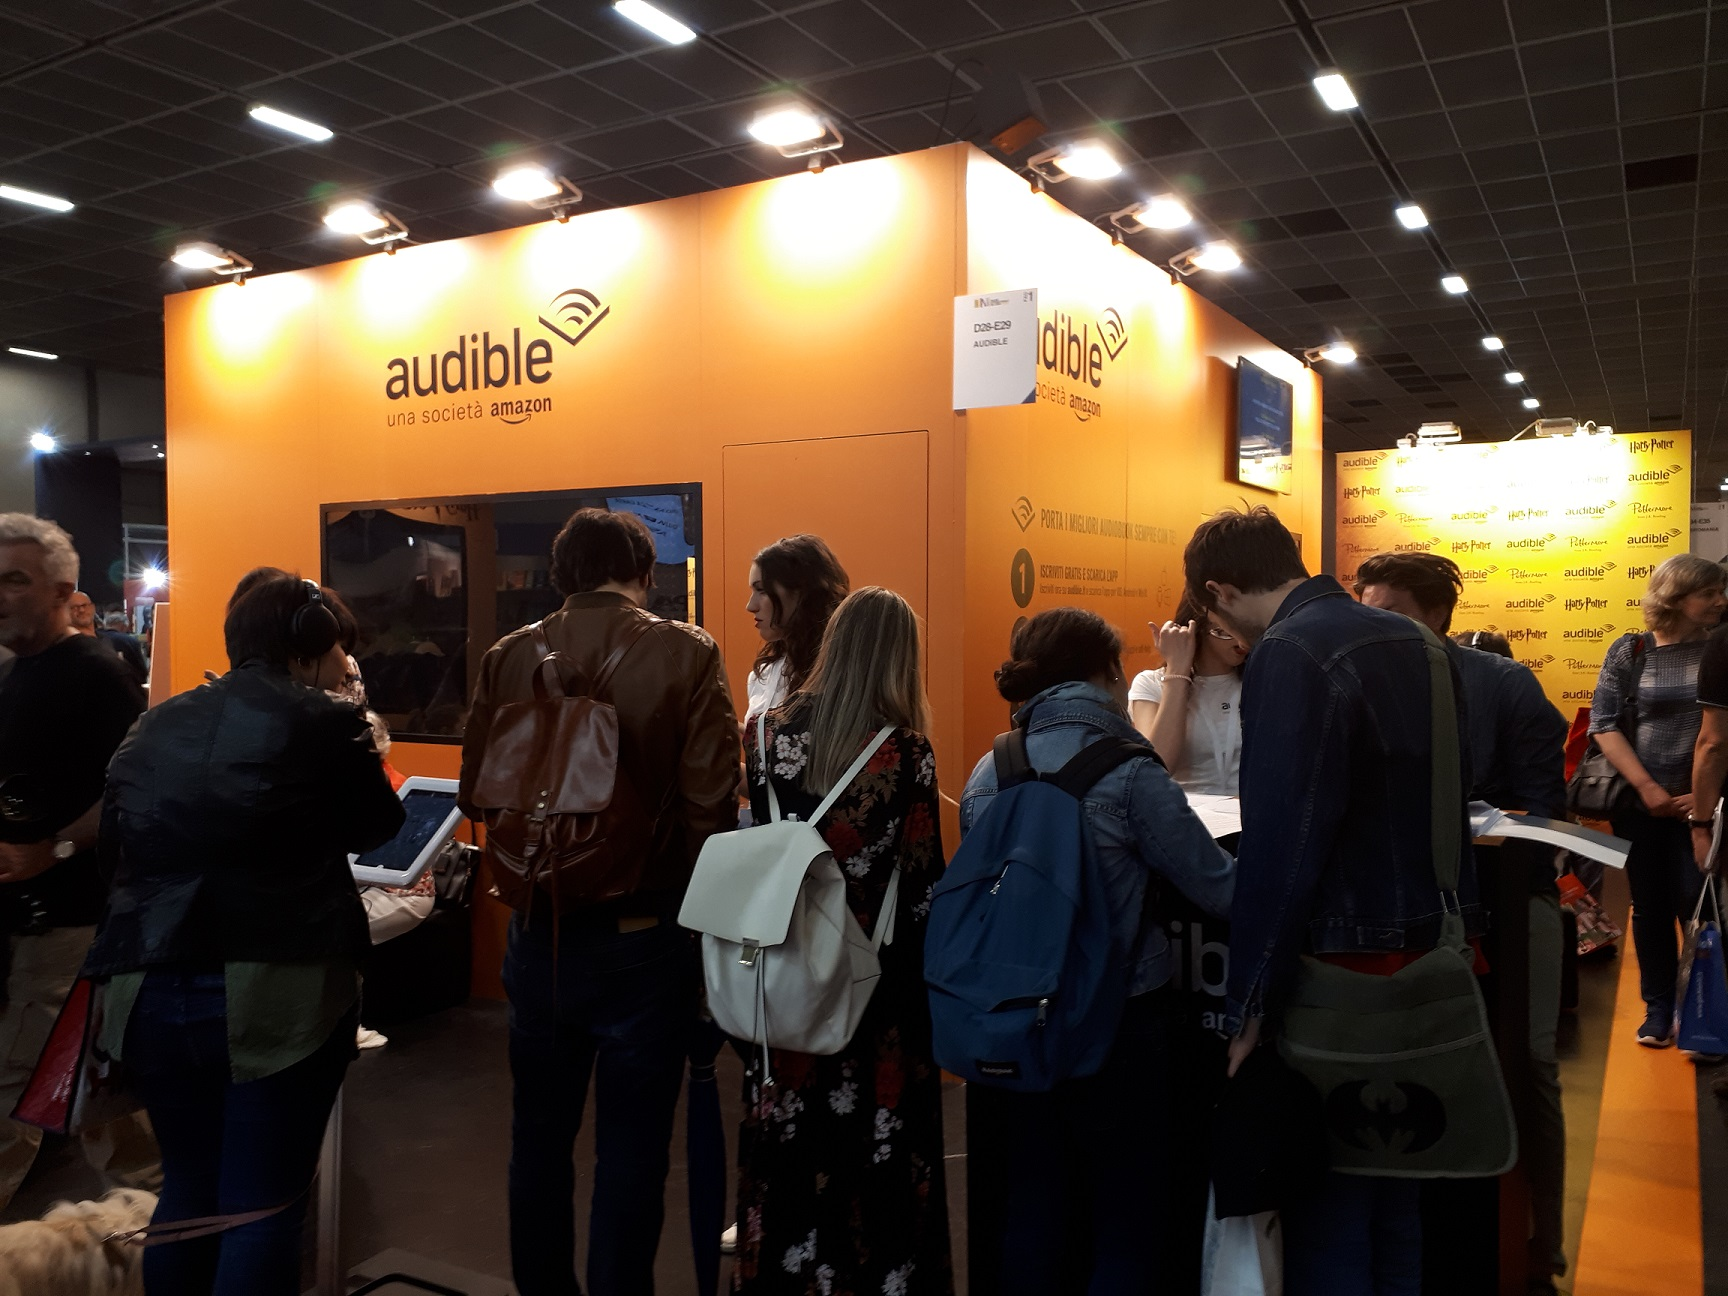 Salone del Libro di Torino 2018 - stand Amazon Audible